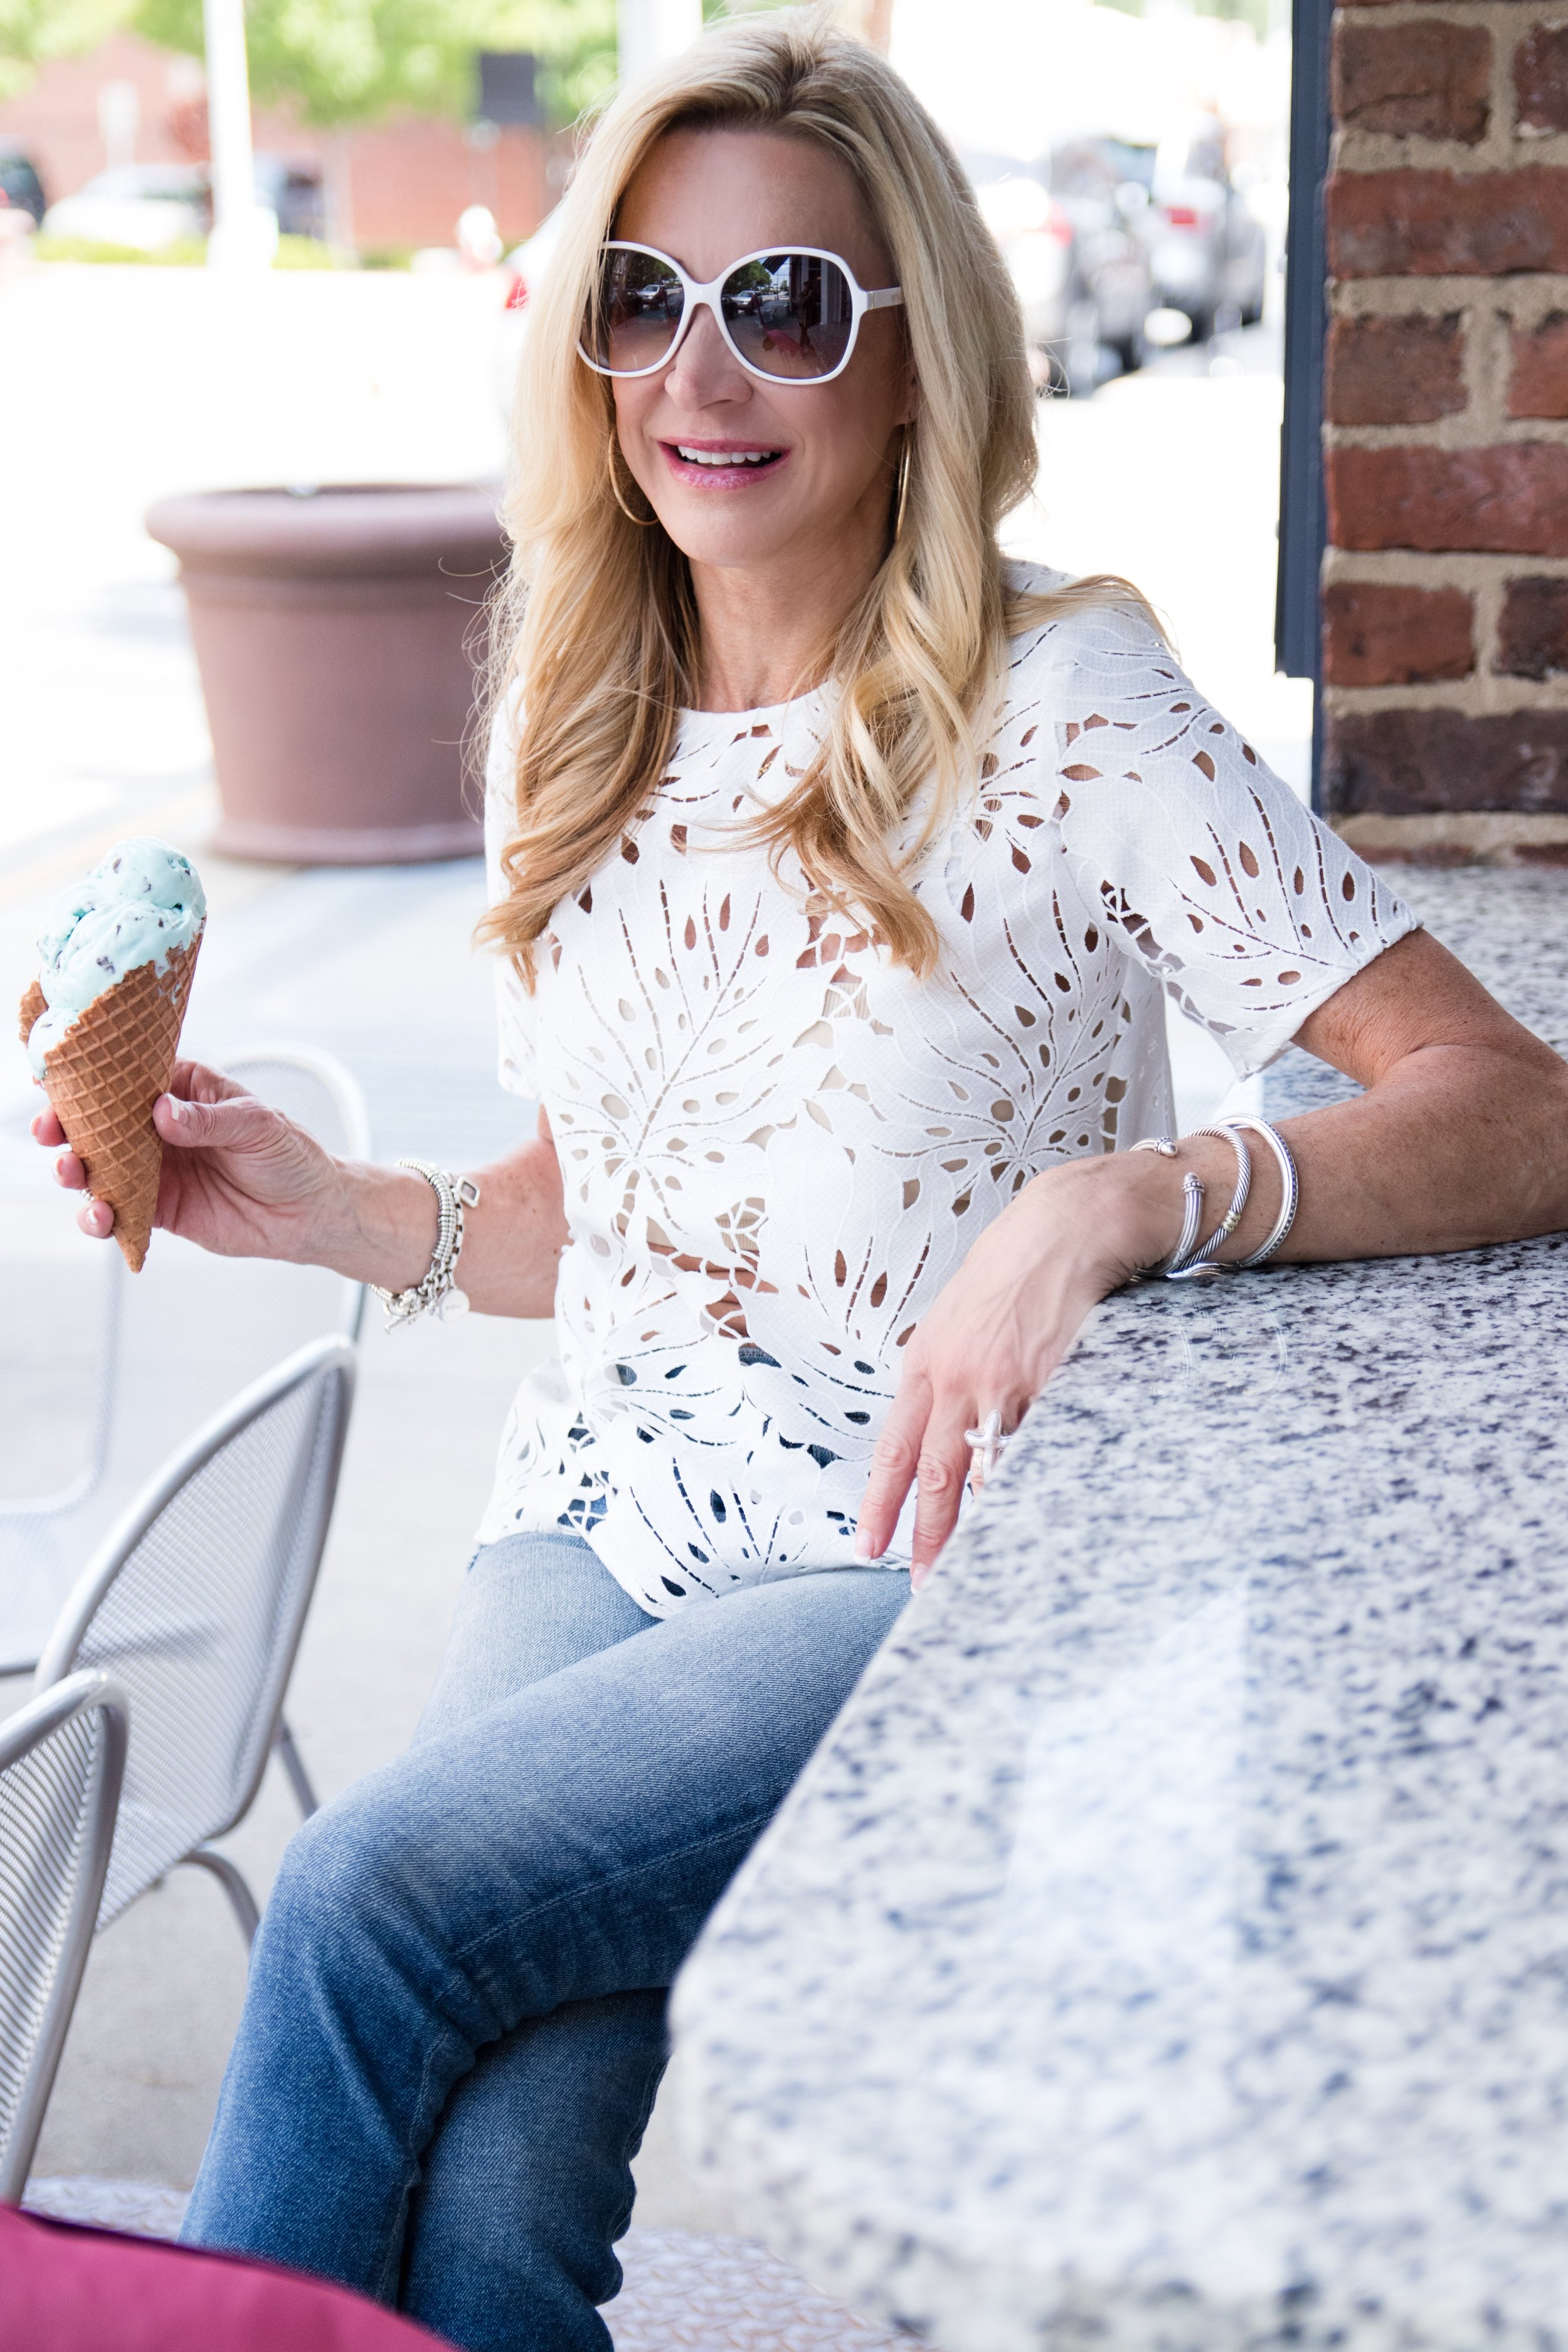 White lace cutwork top with Target sunglasses